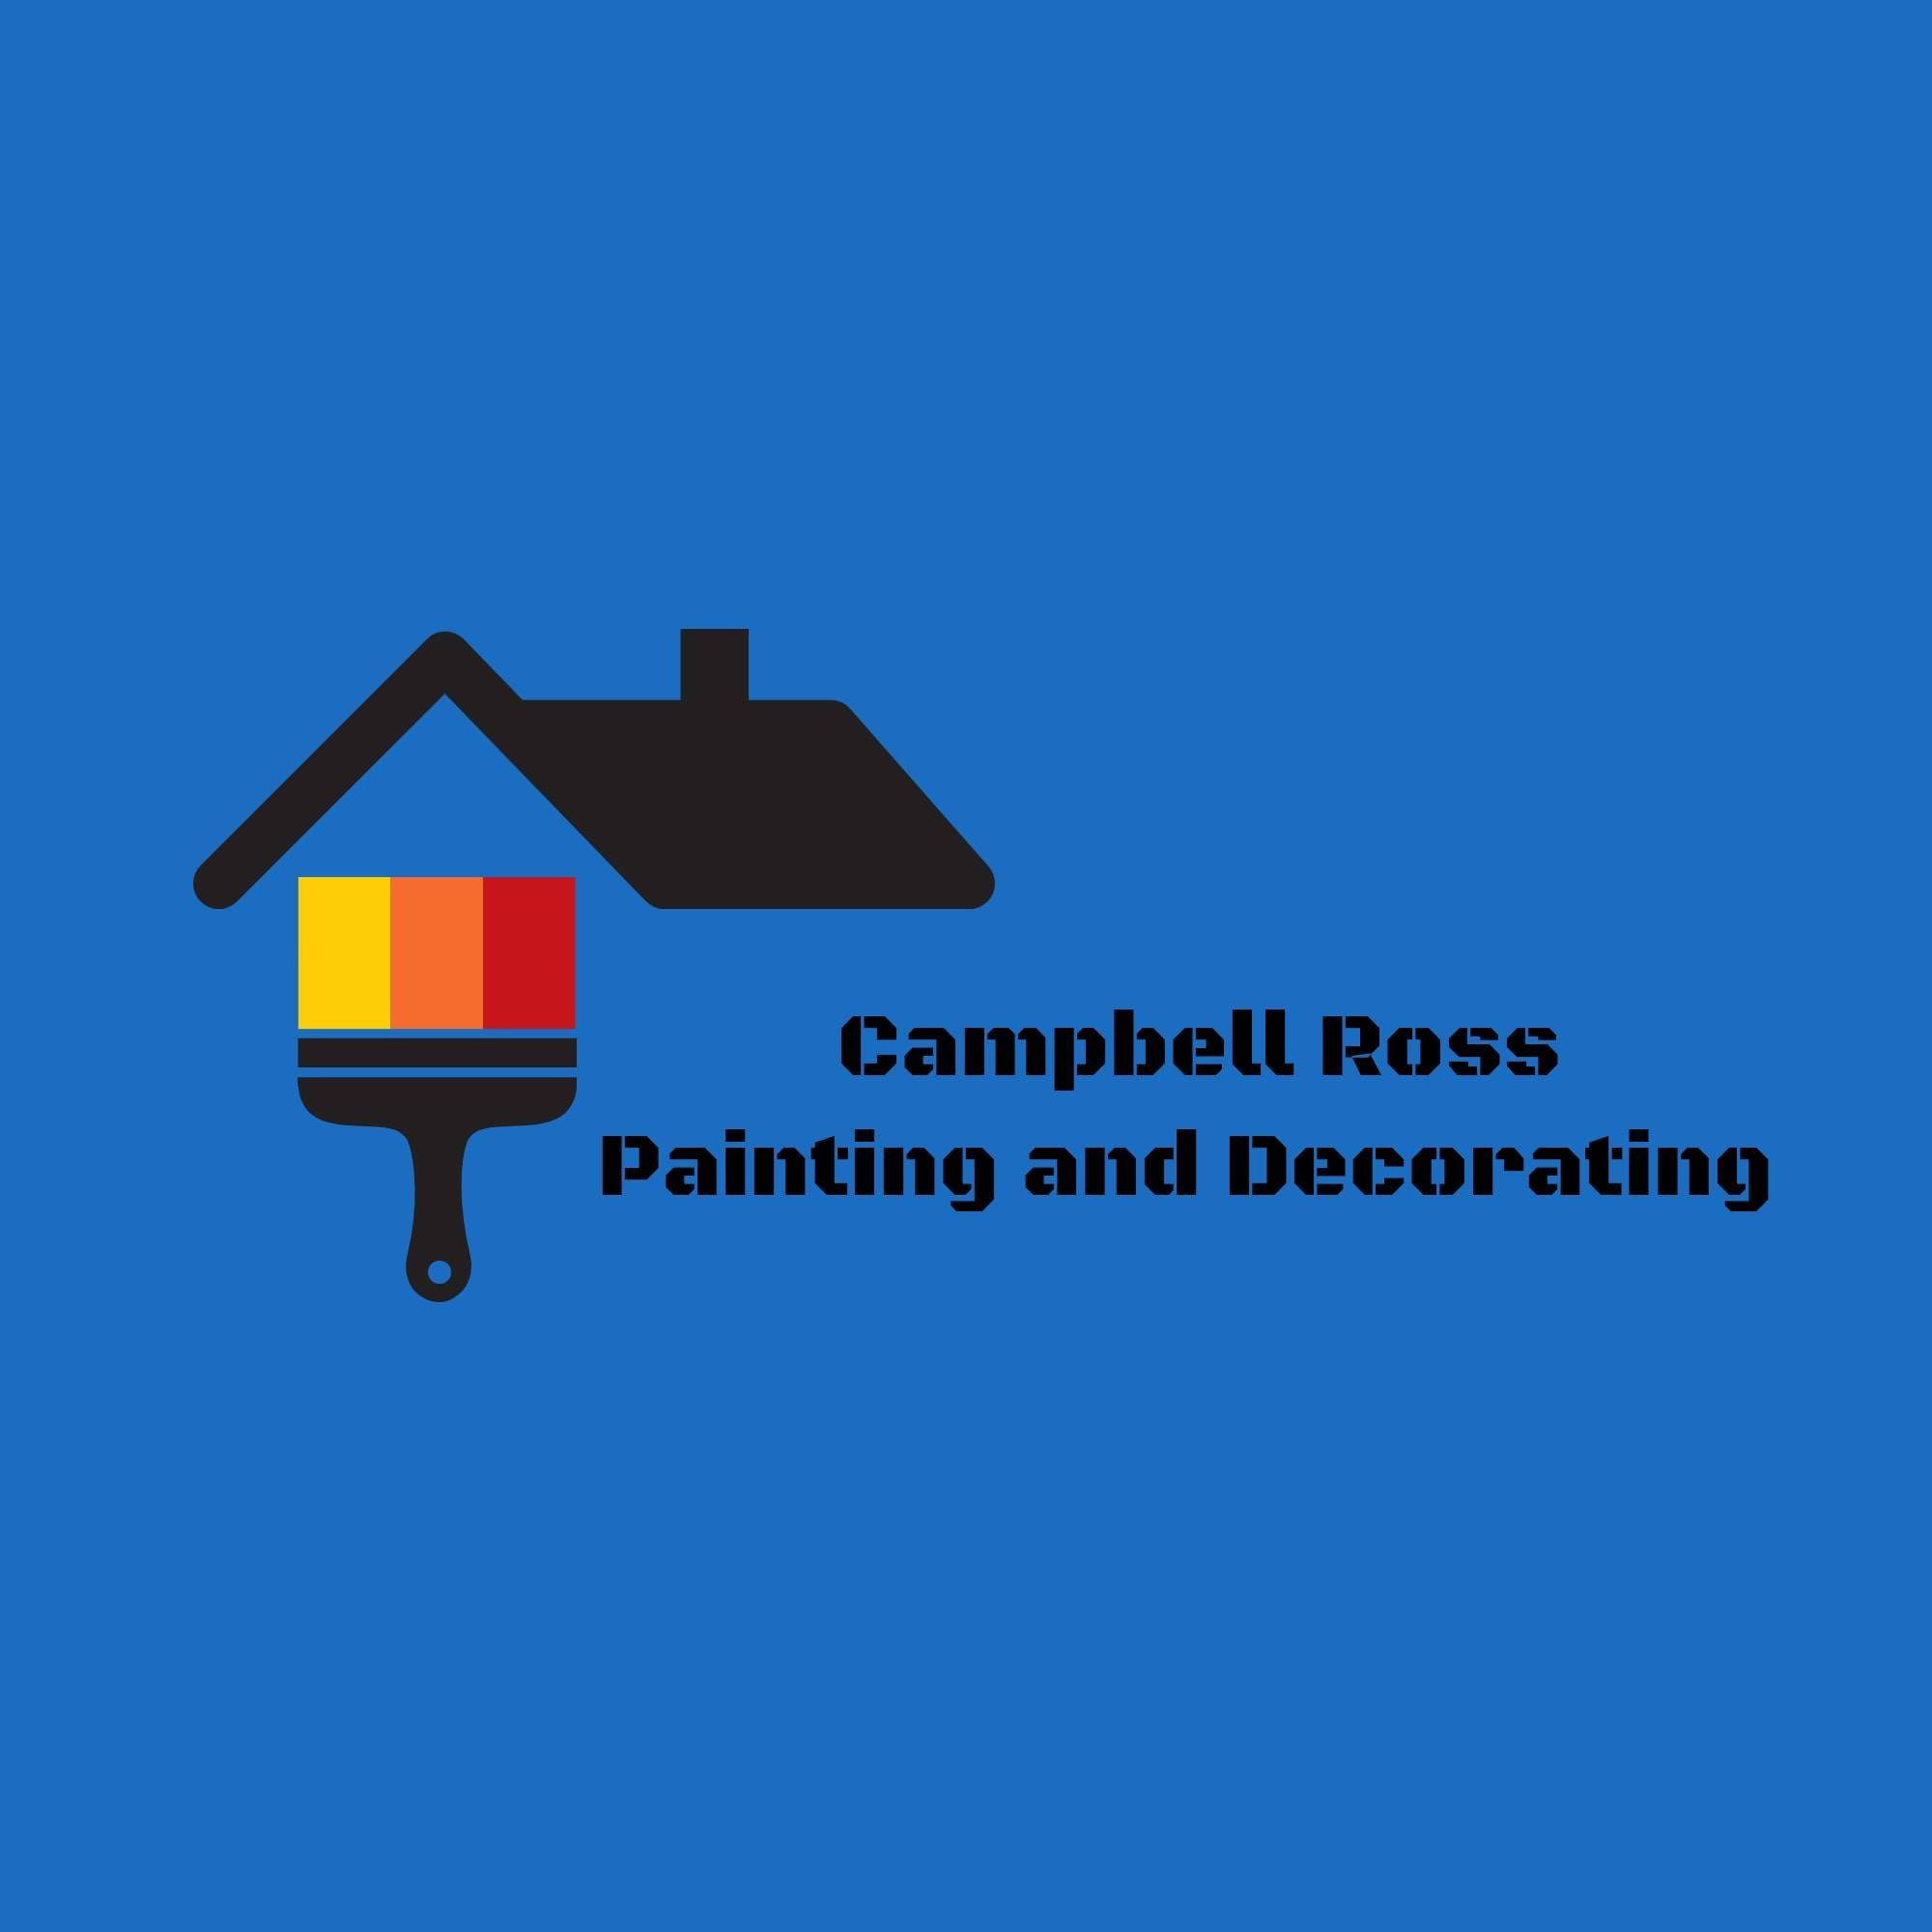 Campbell Ross Painting and Decorating